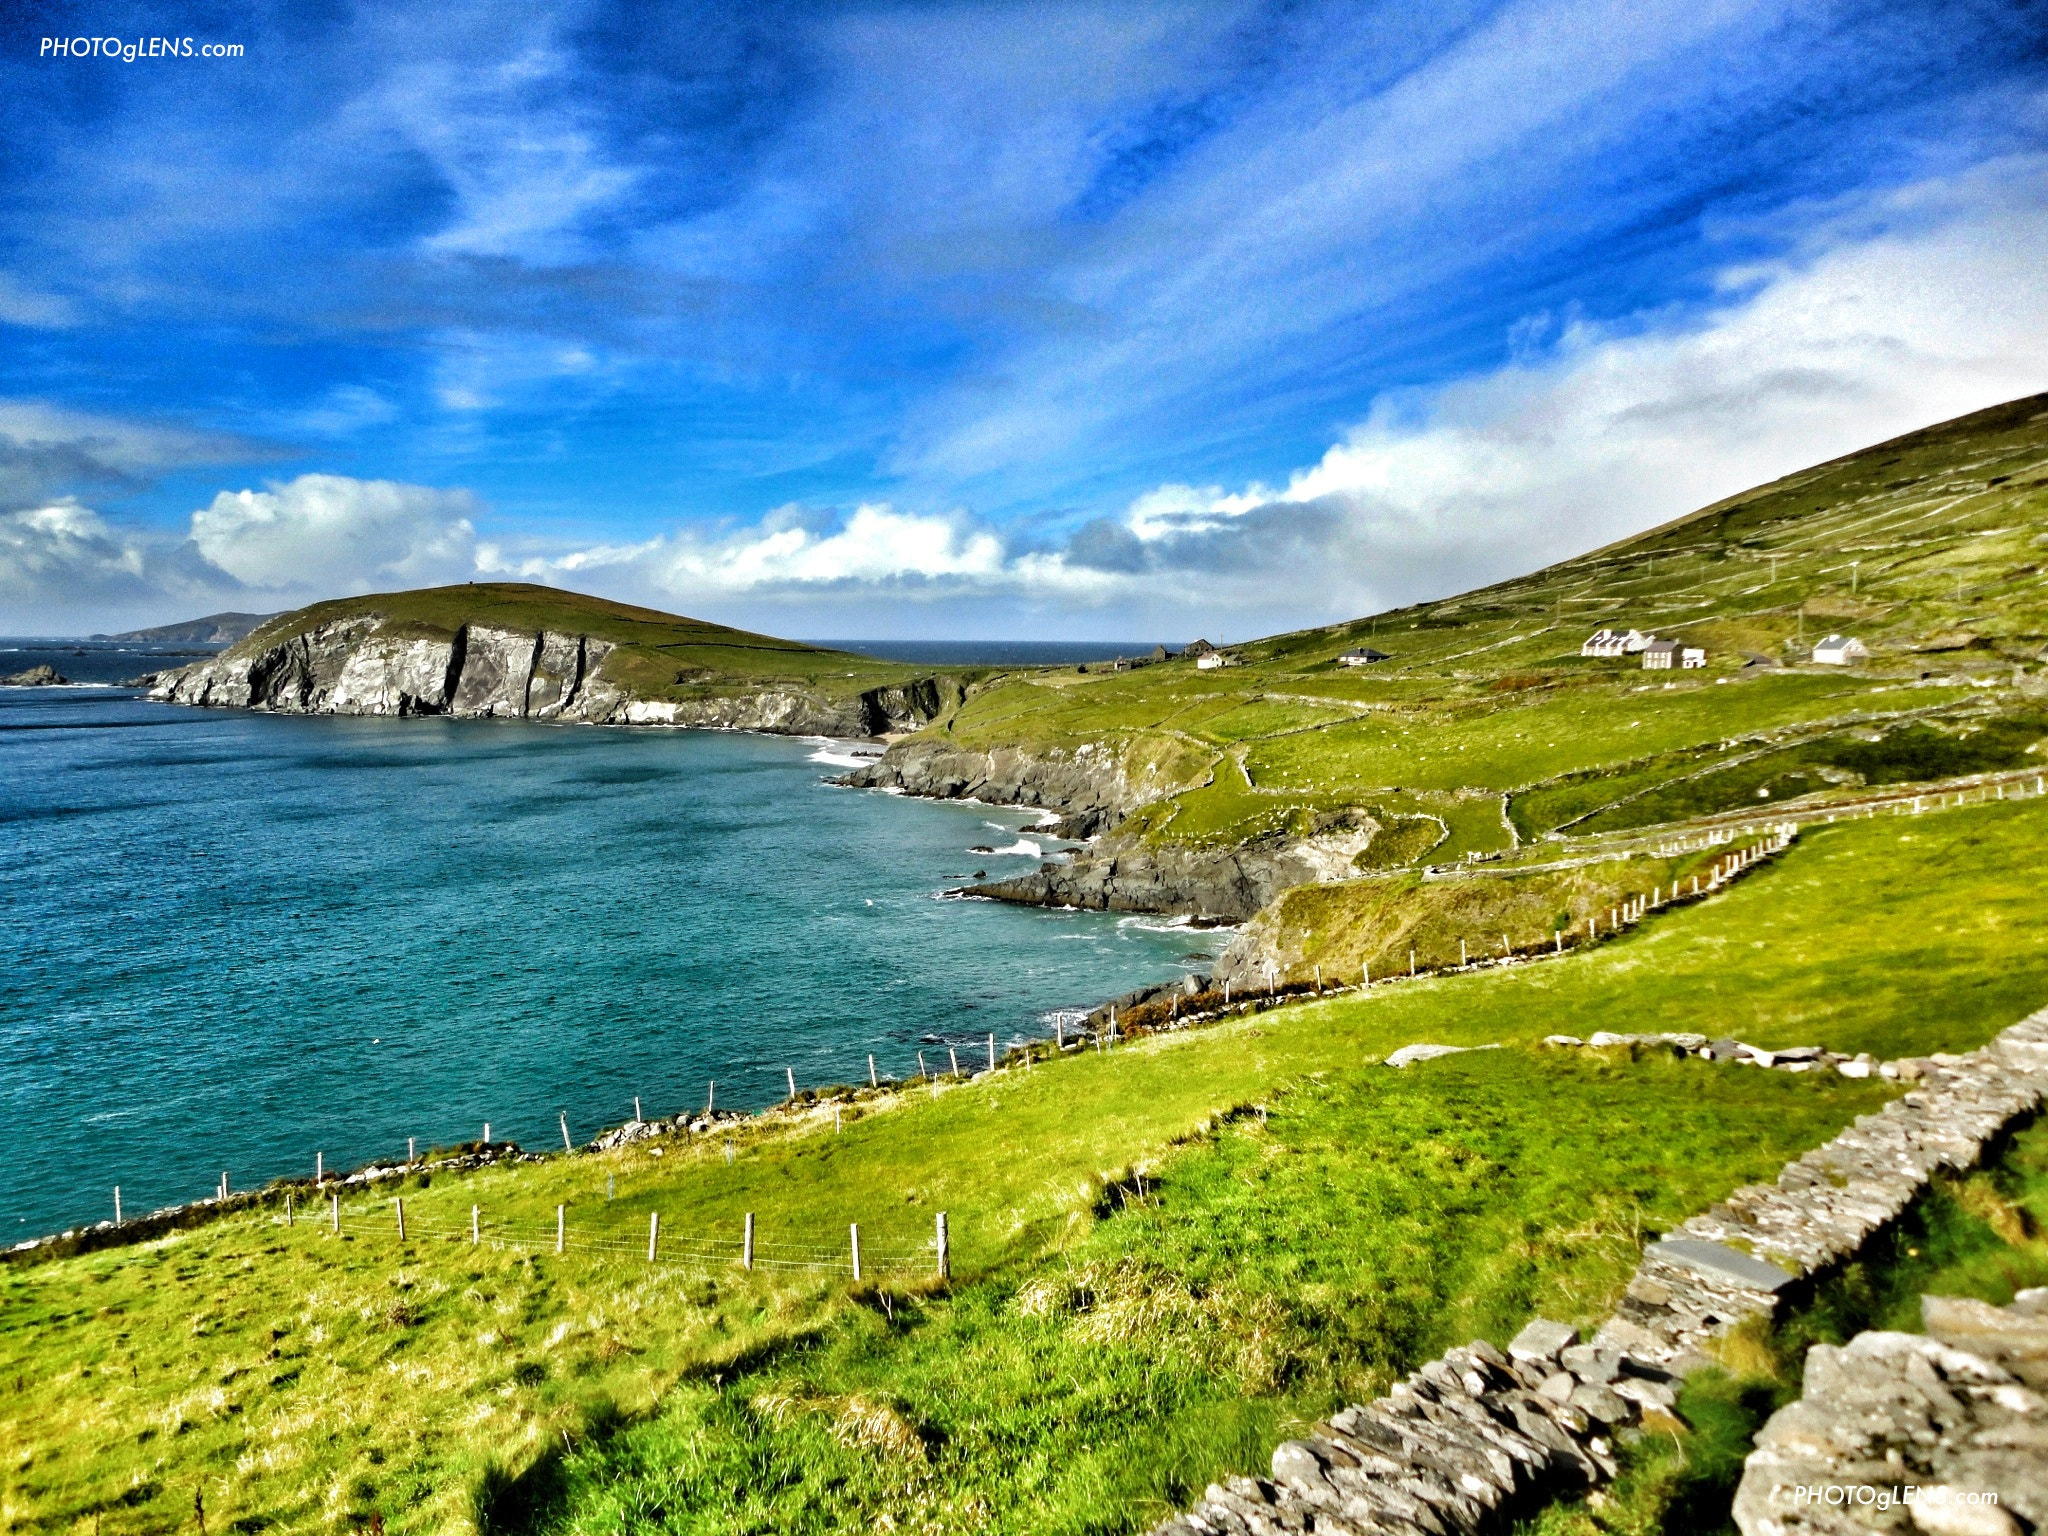 Photograph Irish Slide by PHOTOgLENS  on 500px